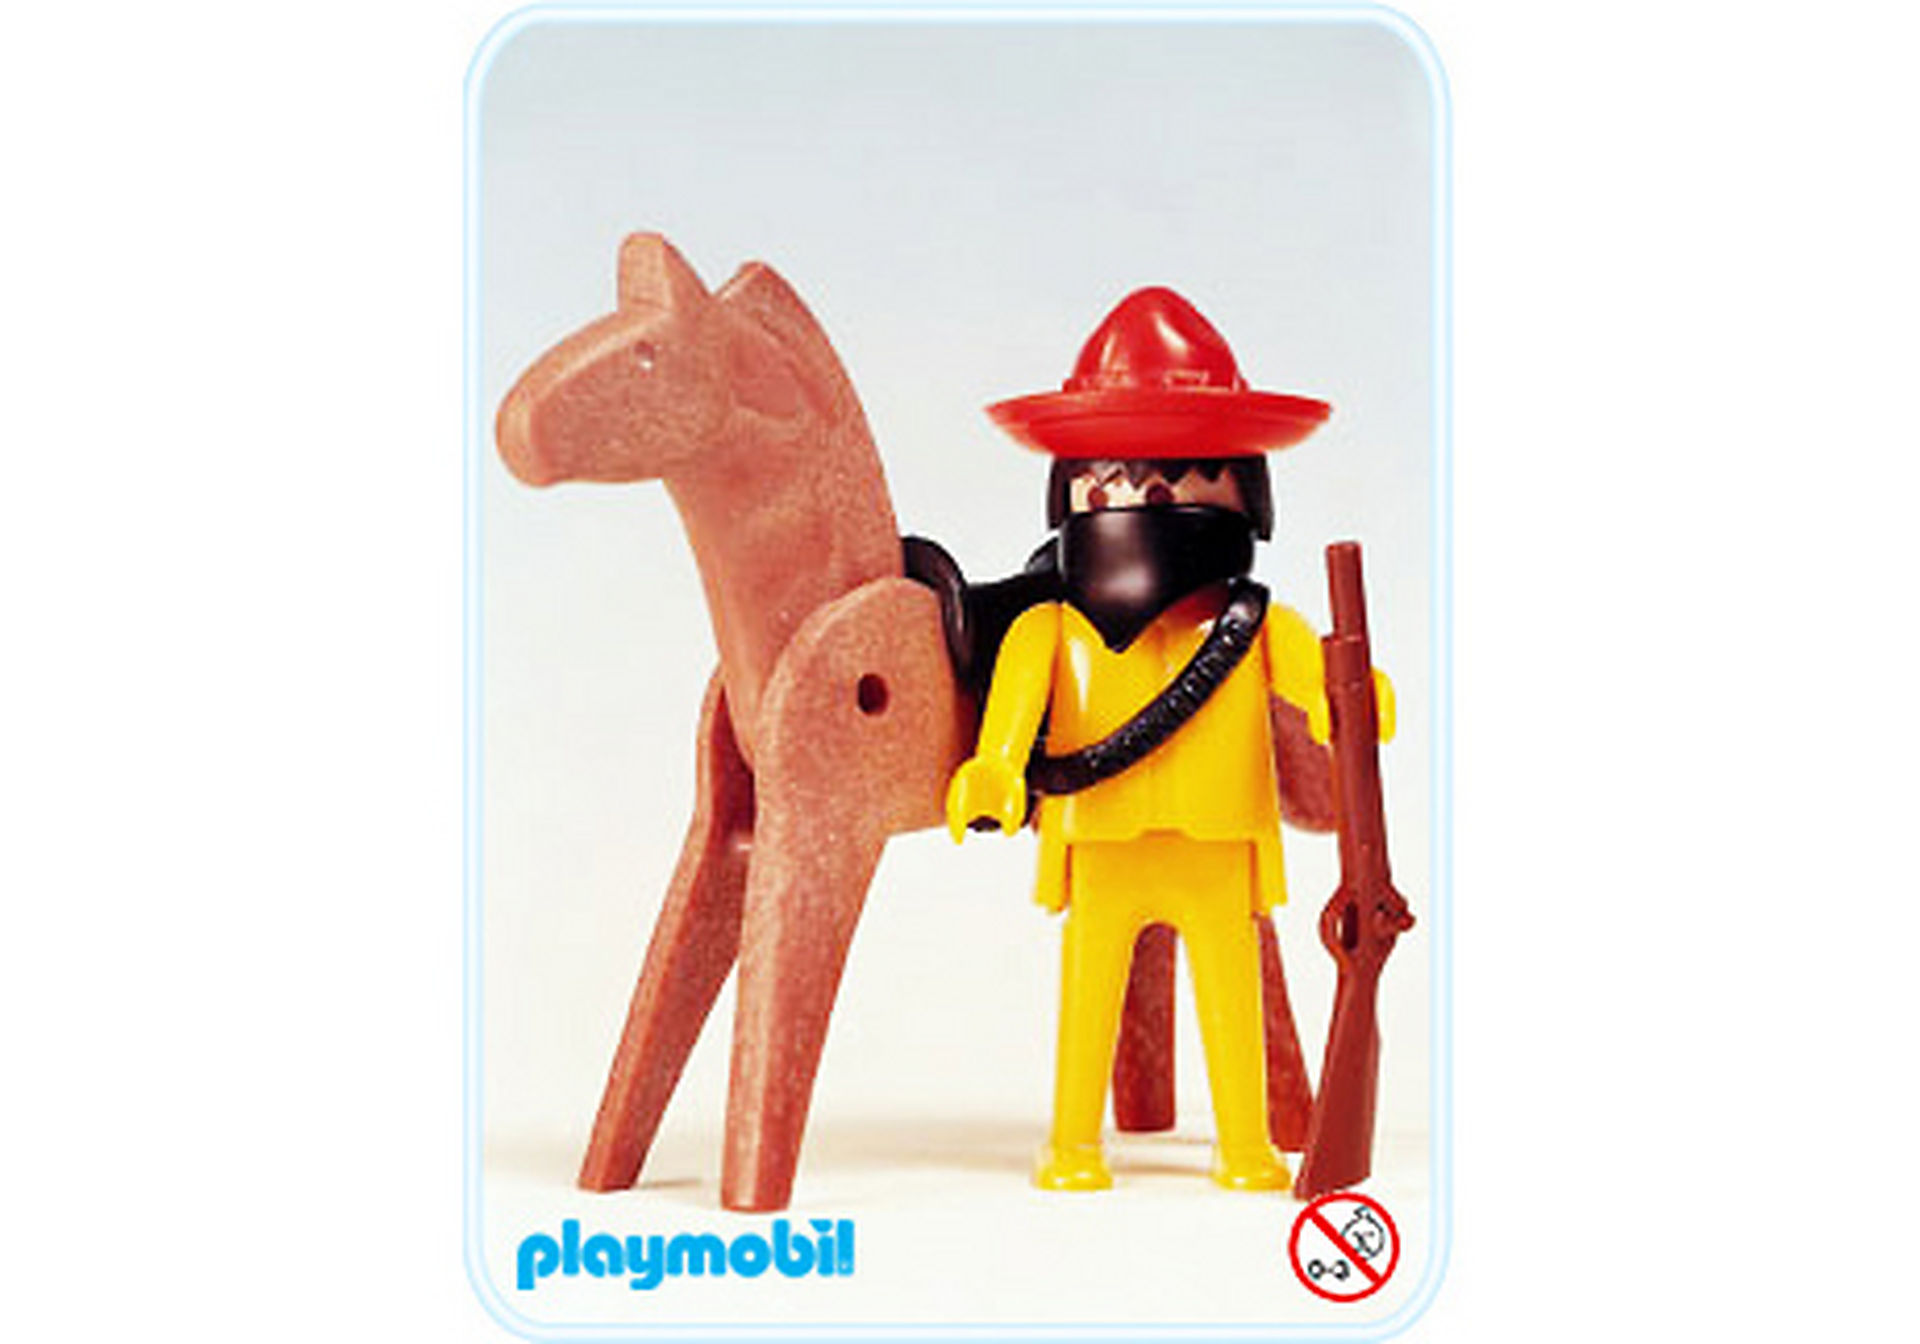 http://media.playmobil.com/i/playmobil/3343-A_product_detail/Mexicain / cheval